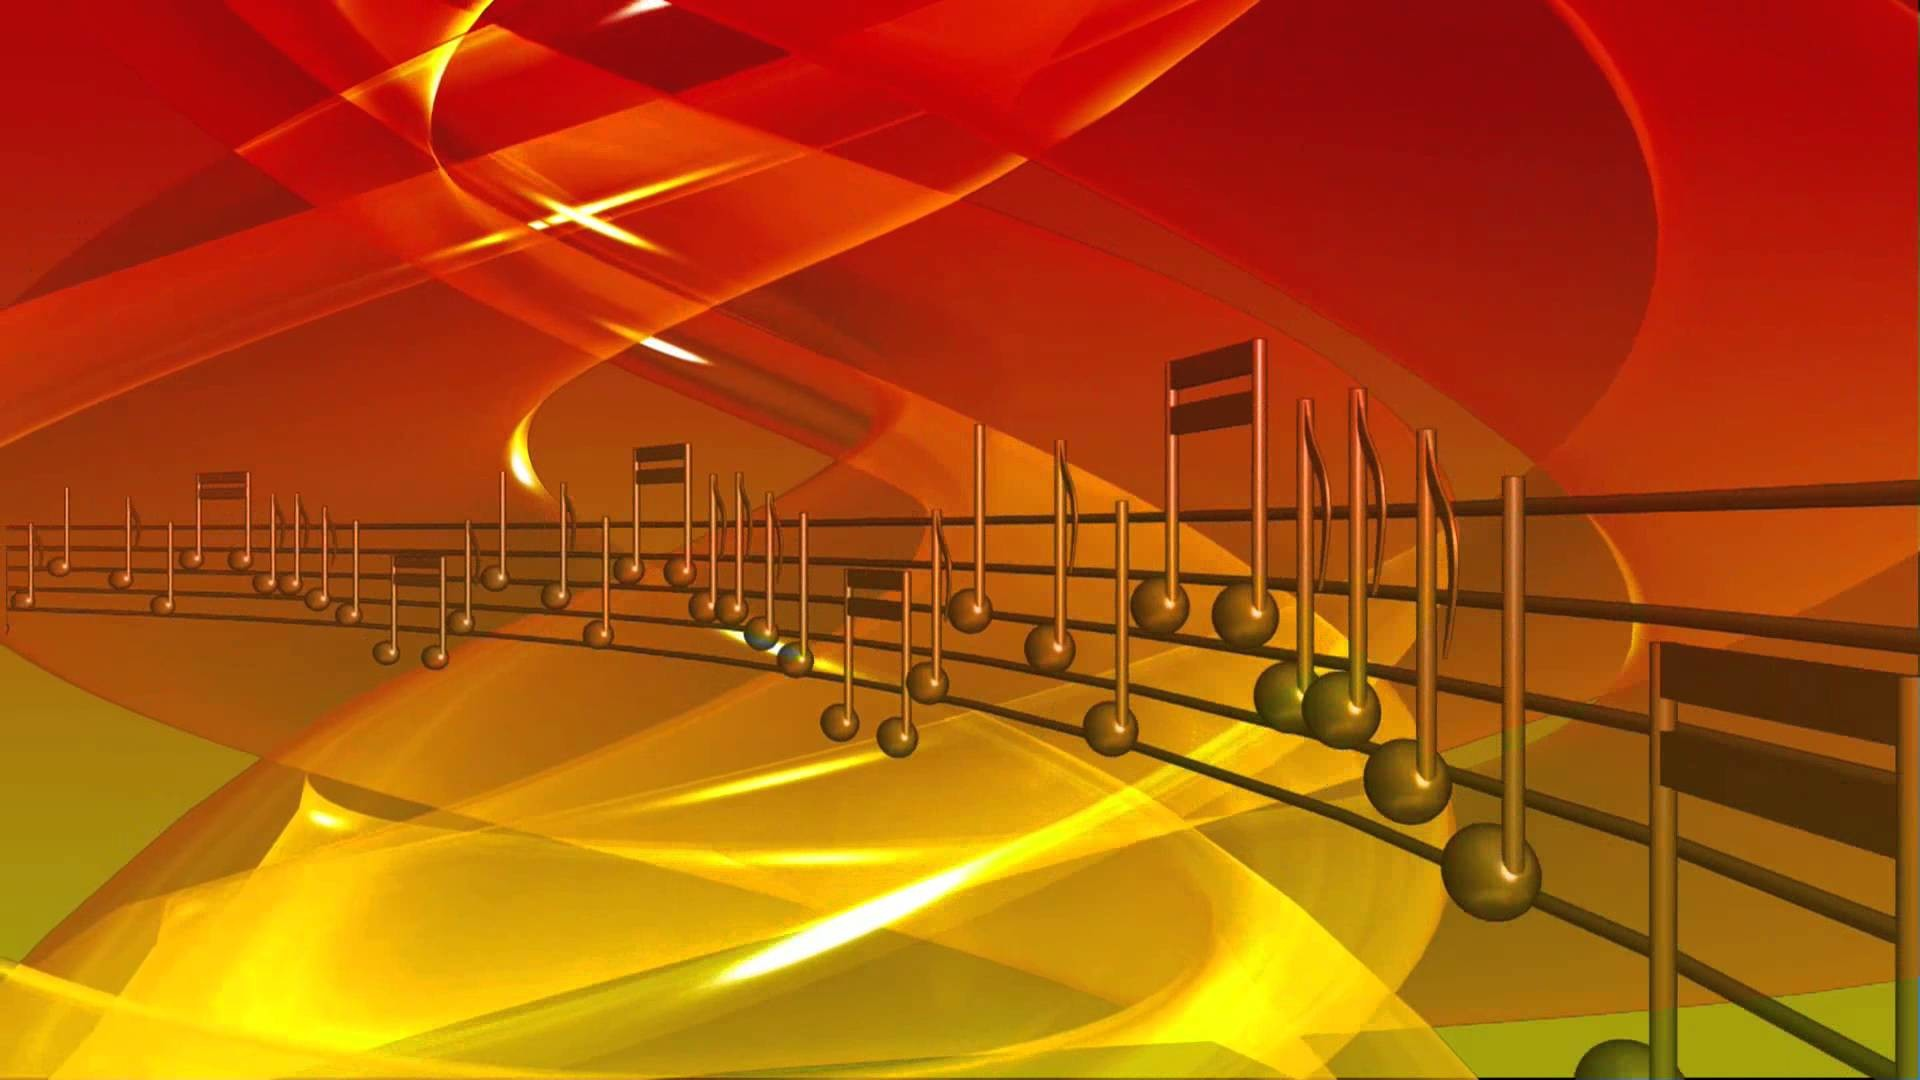 Colorful Music Notes In A Lin Hd Wallpaper Background Images: Musical Background Images ·①